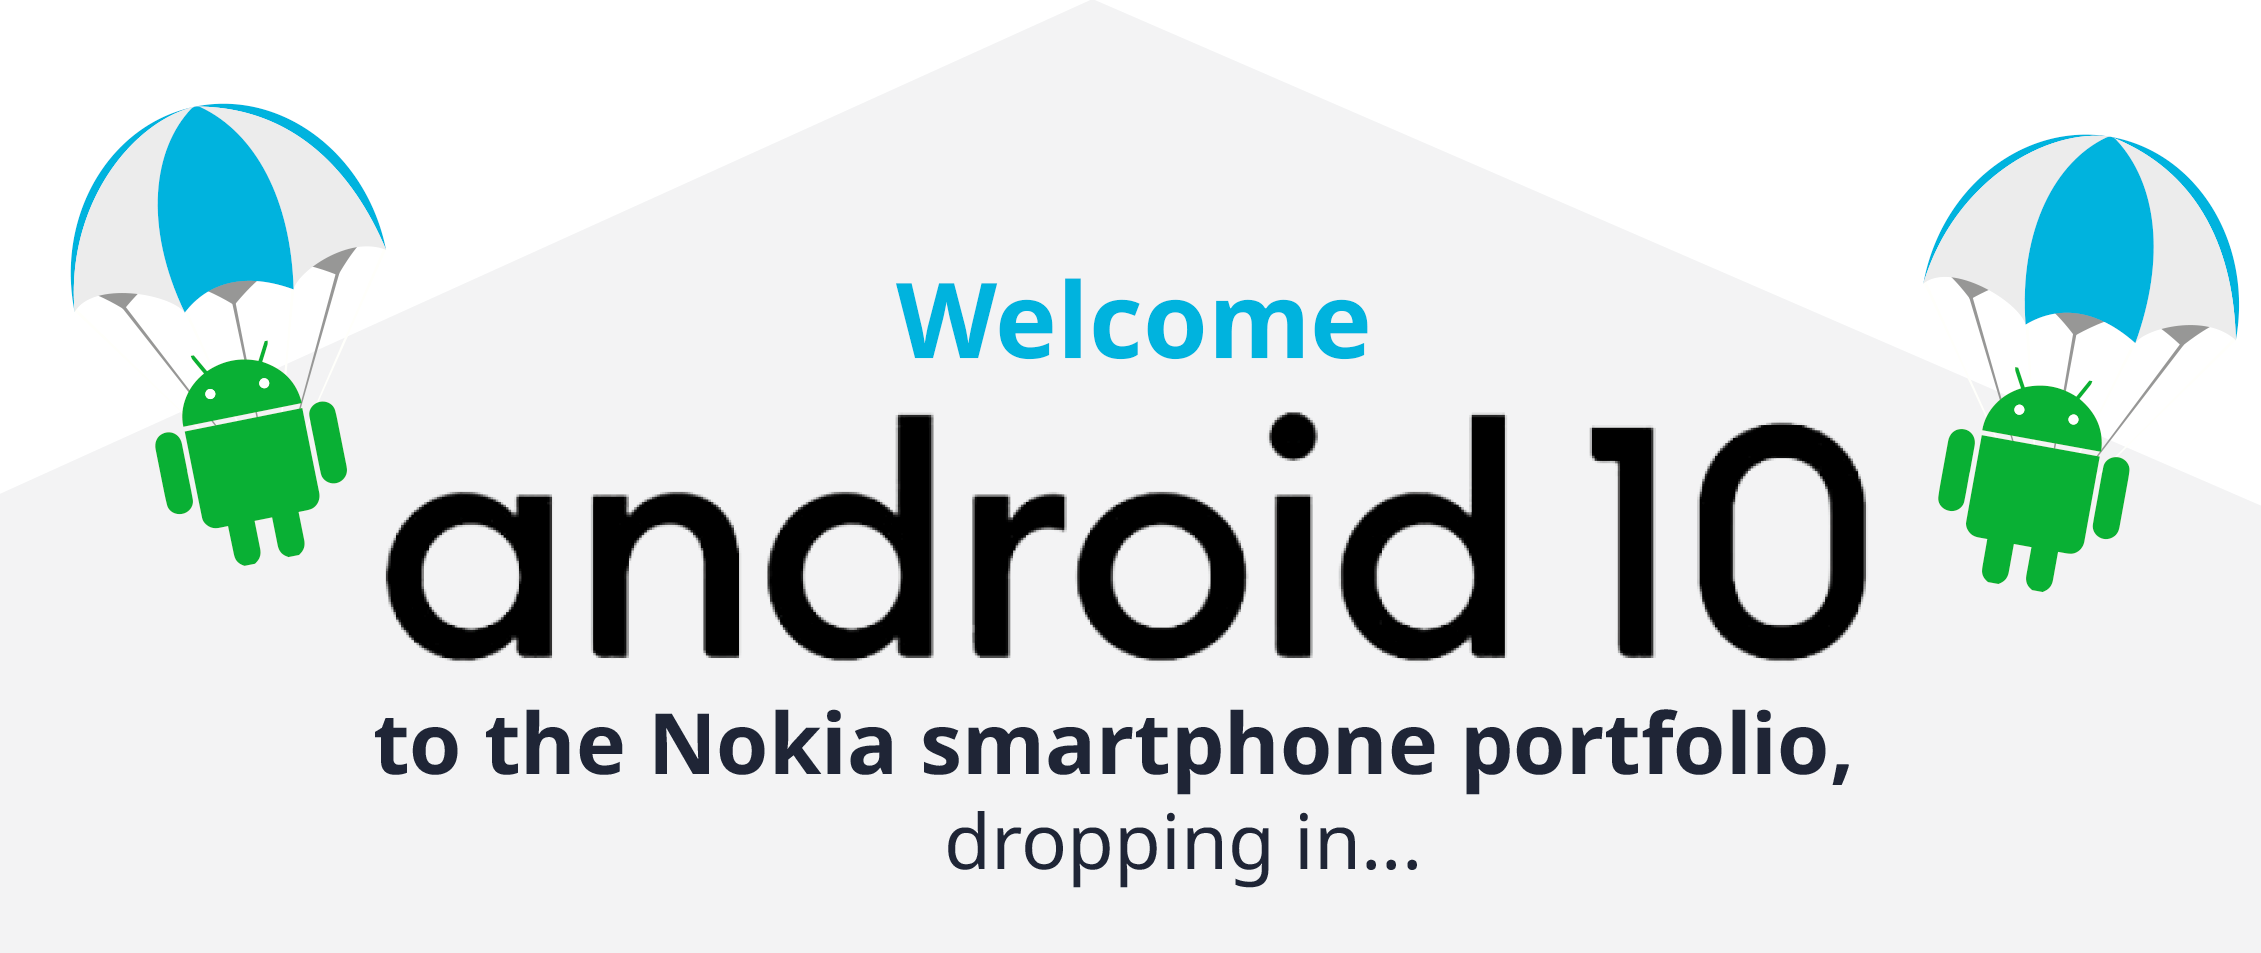 Nokia reveals its Android 10 update plans